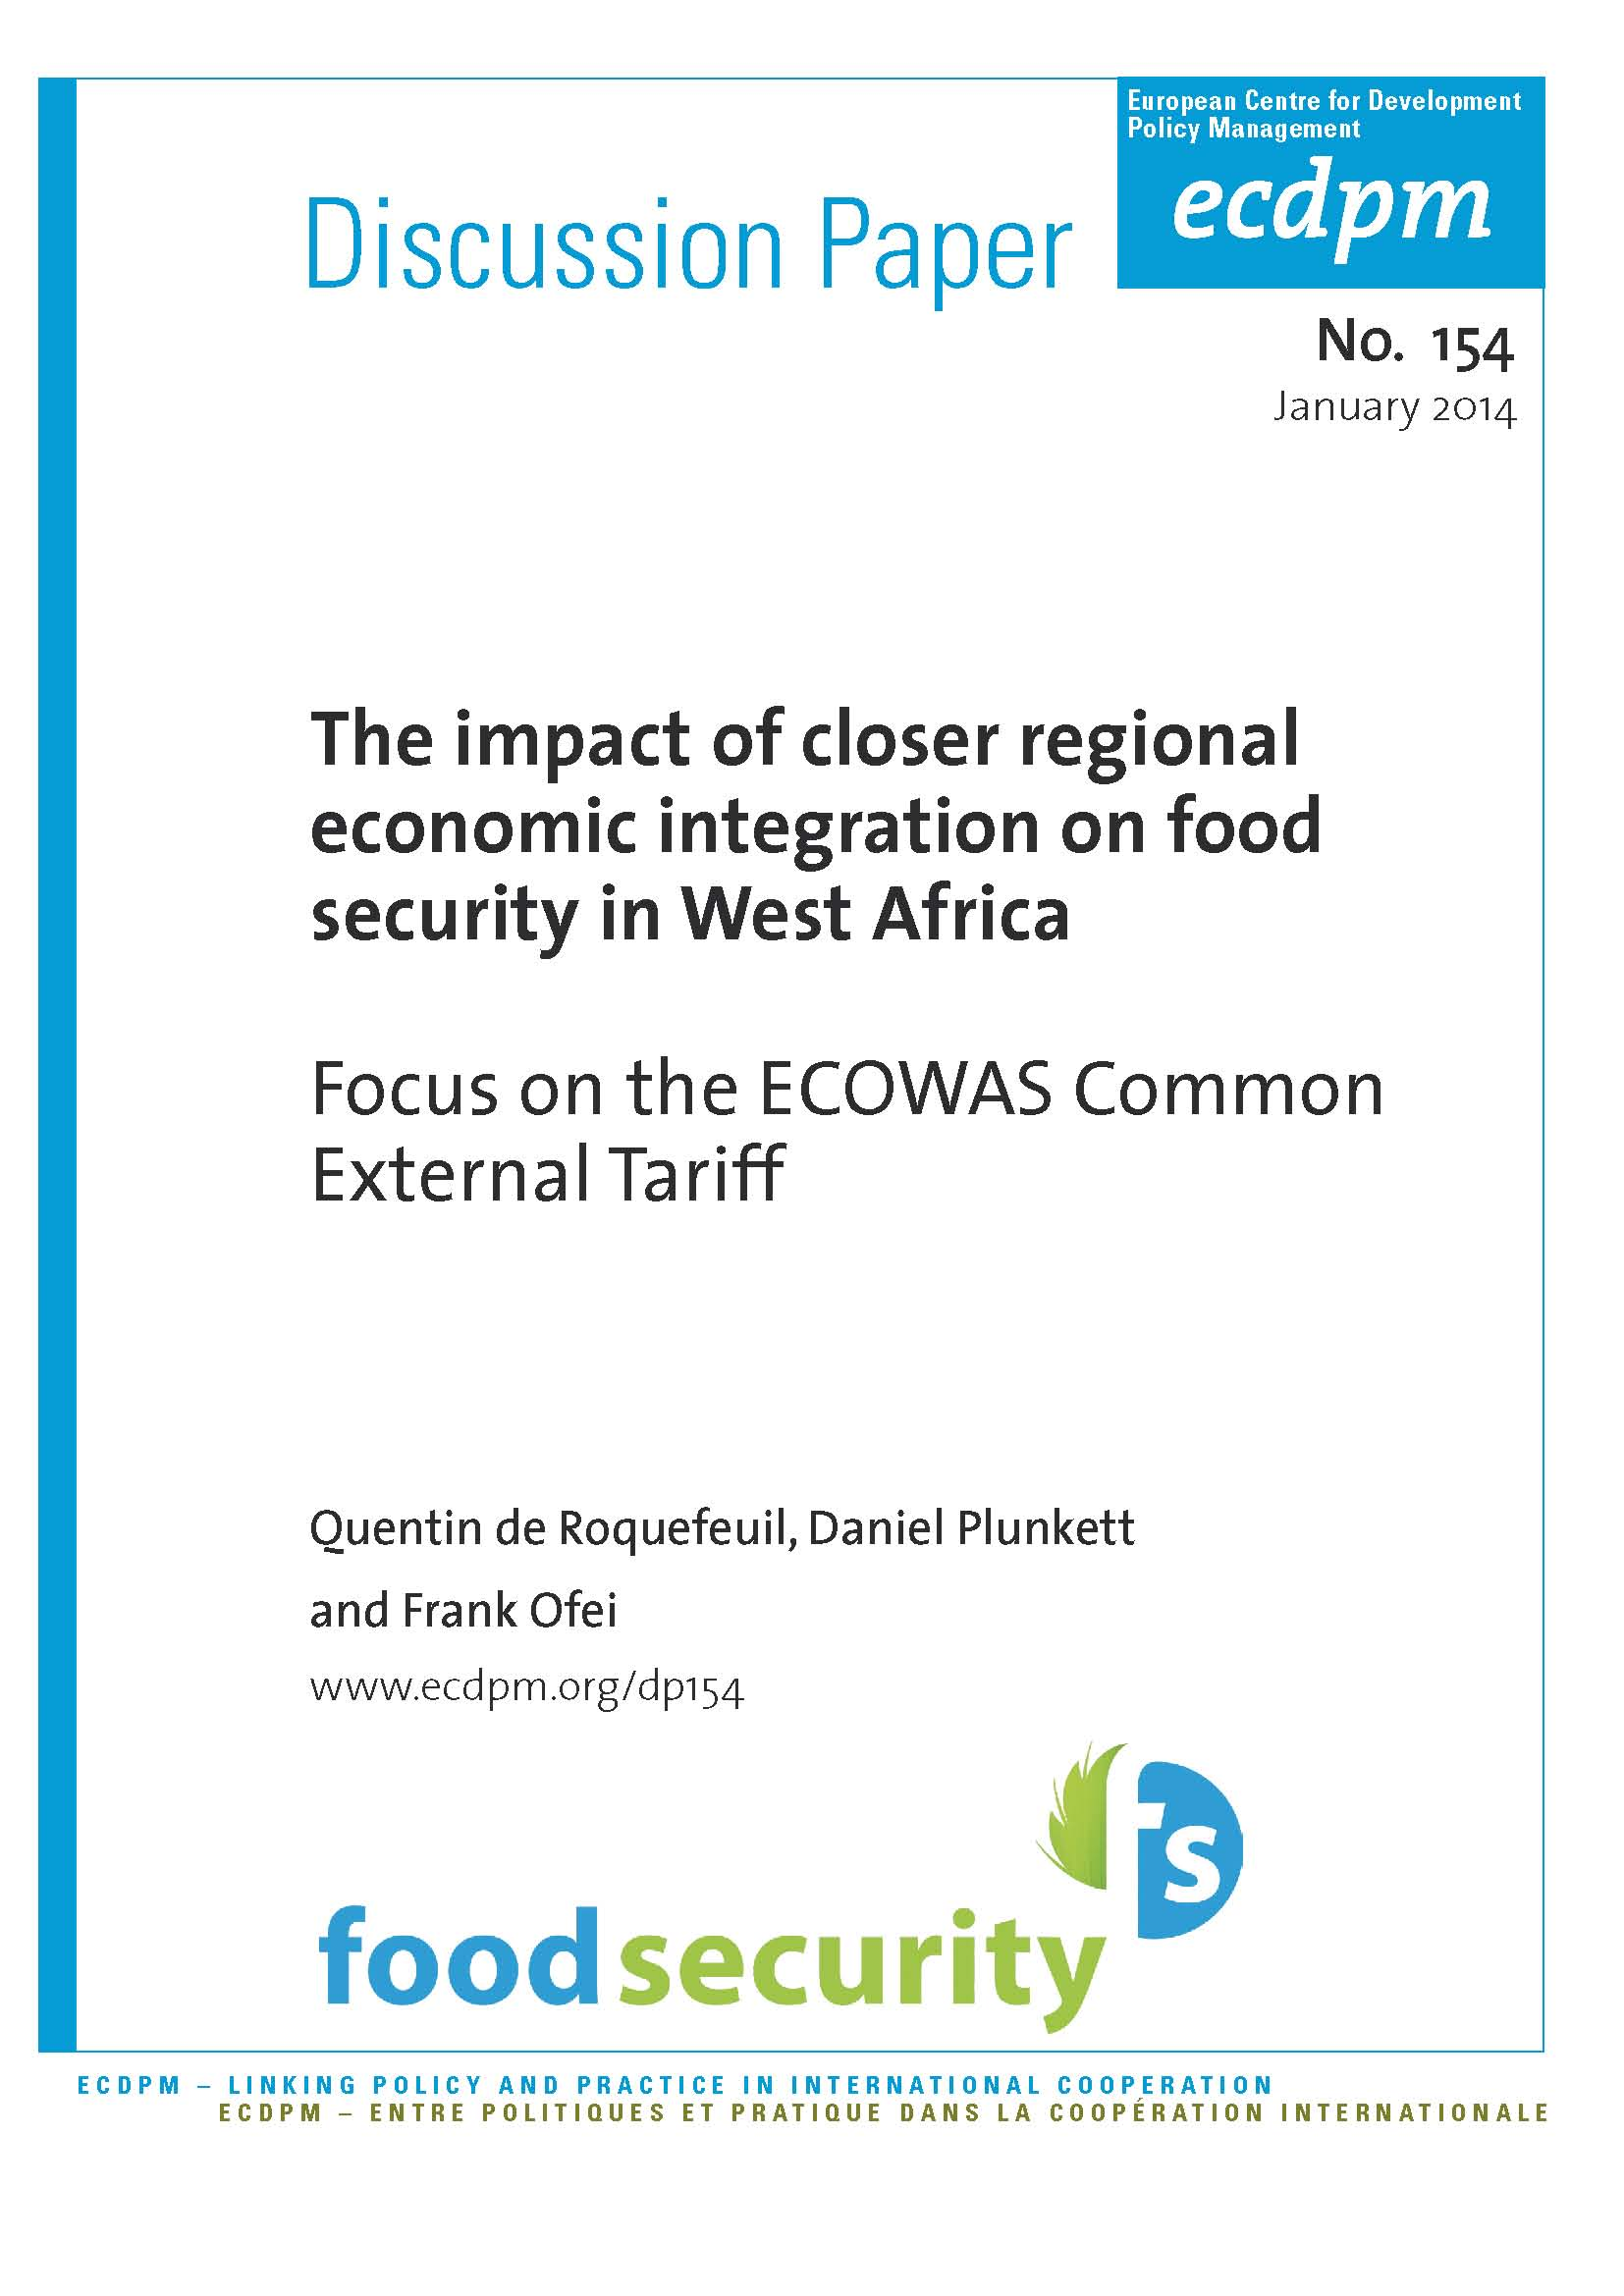 The impact of closer regional economic integration on food security in West Africa: Focus on the ECOWAS Common External Tariff